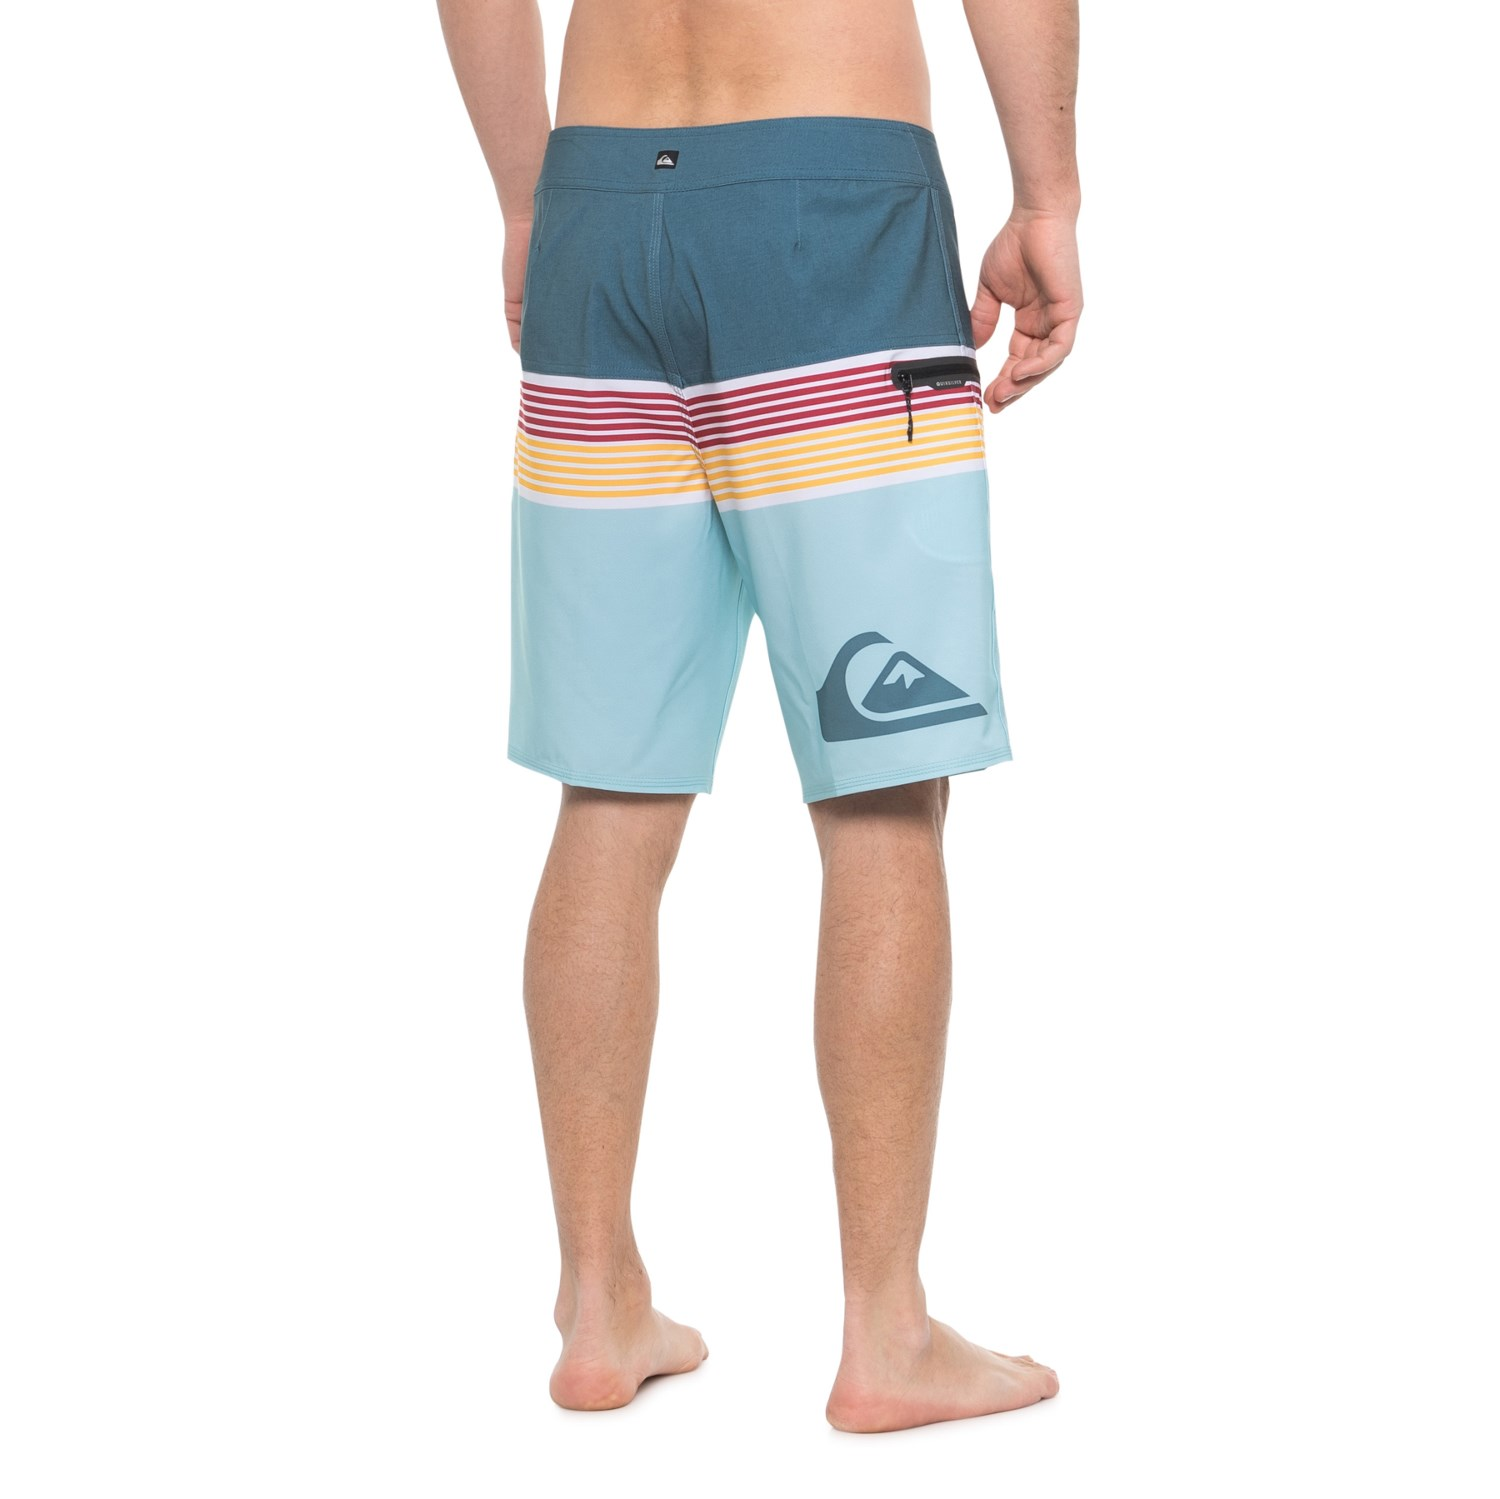 """43c47aa307c9 Quiksilver Highline Division 20"""" Boardshorts (For Men) - Save 44%"""